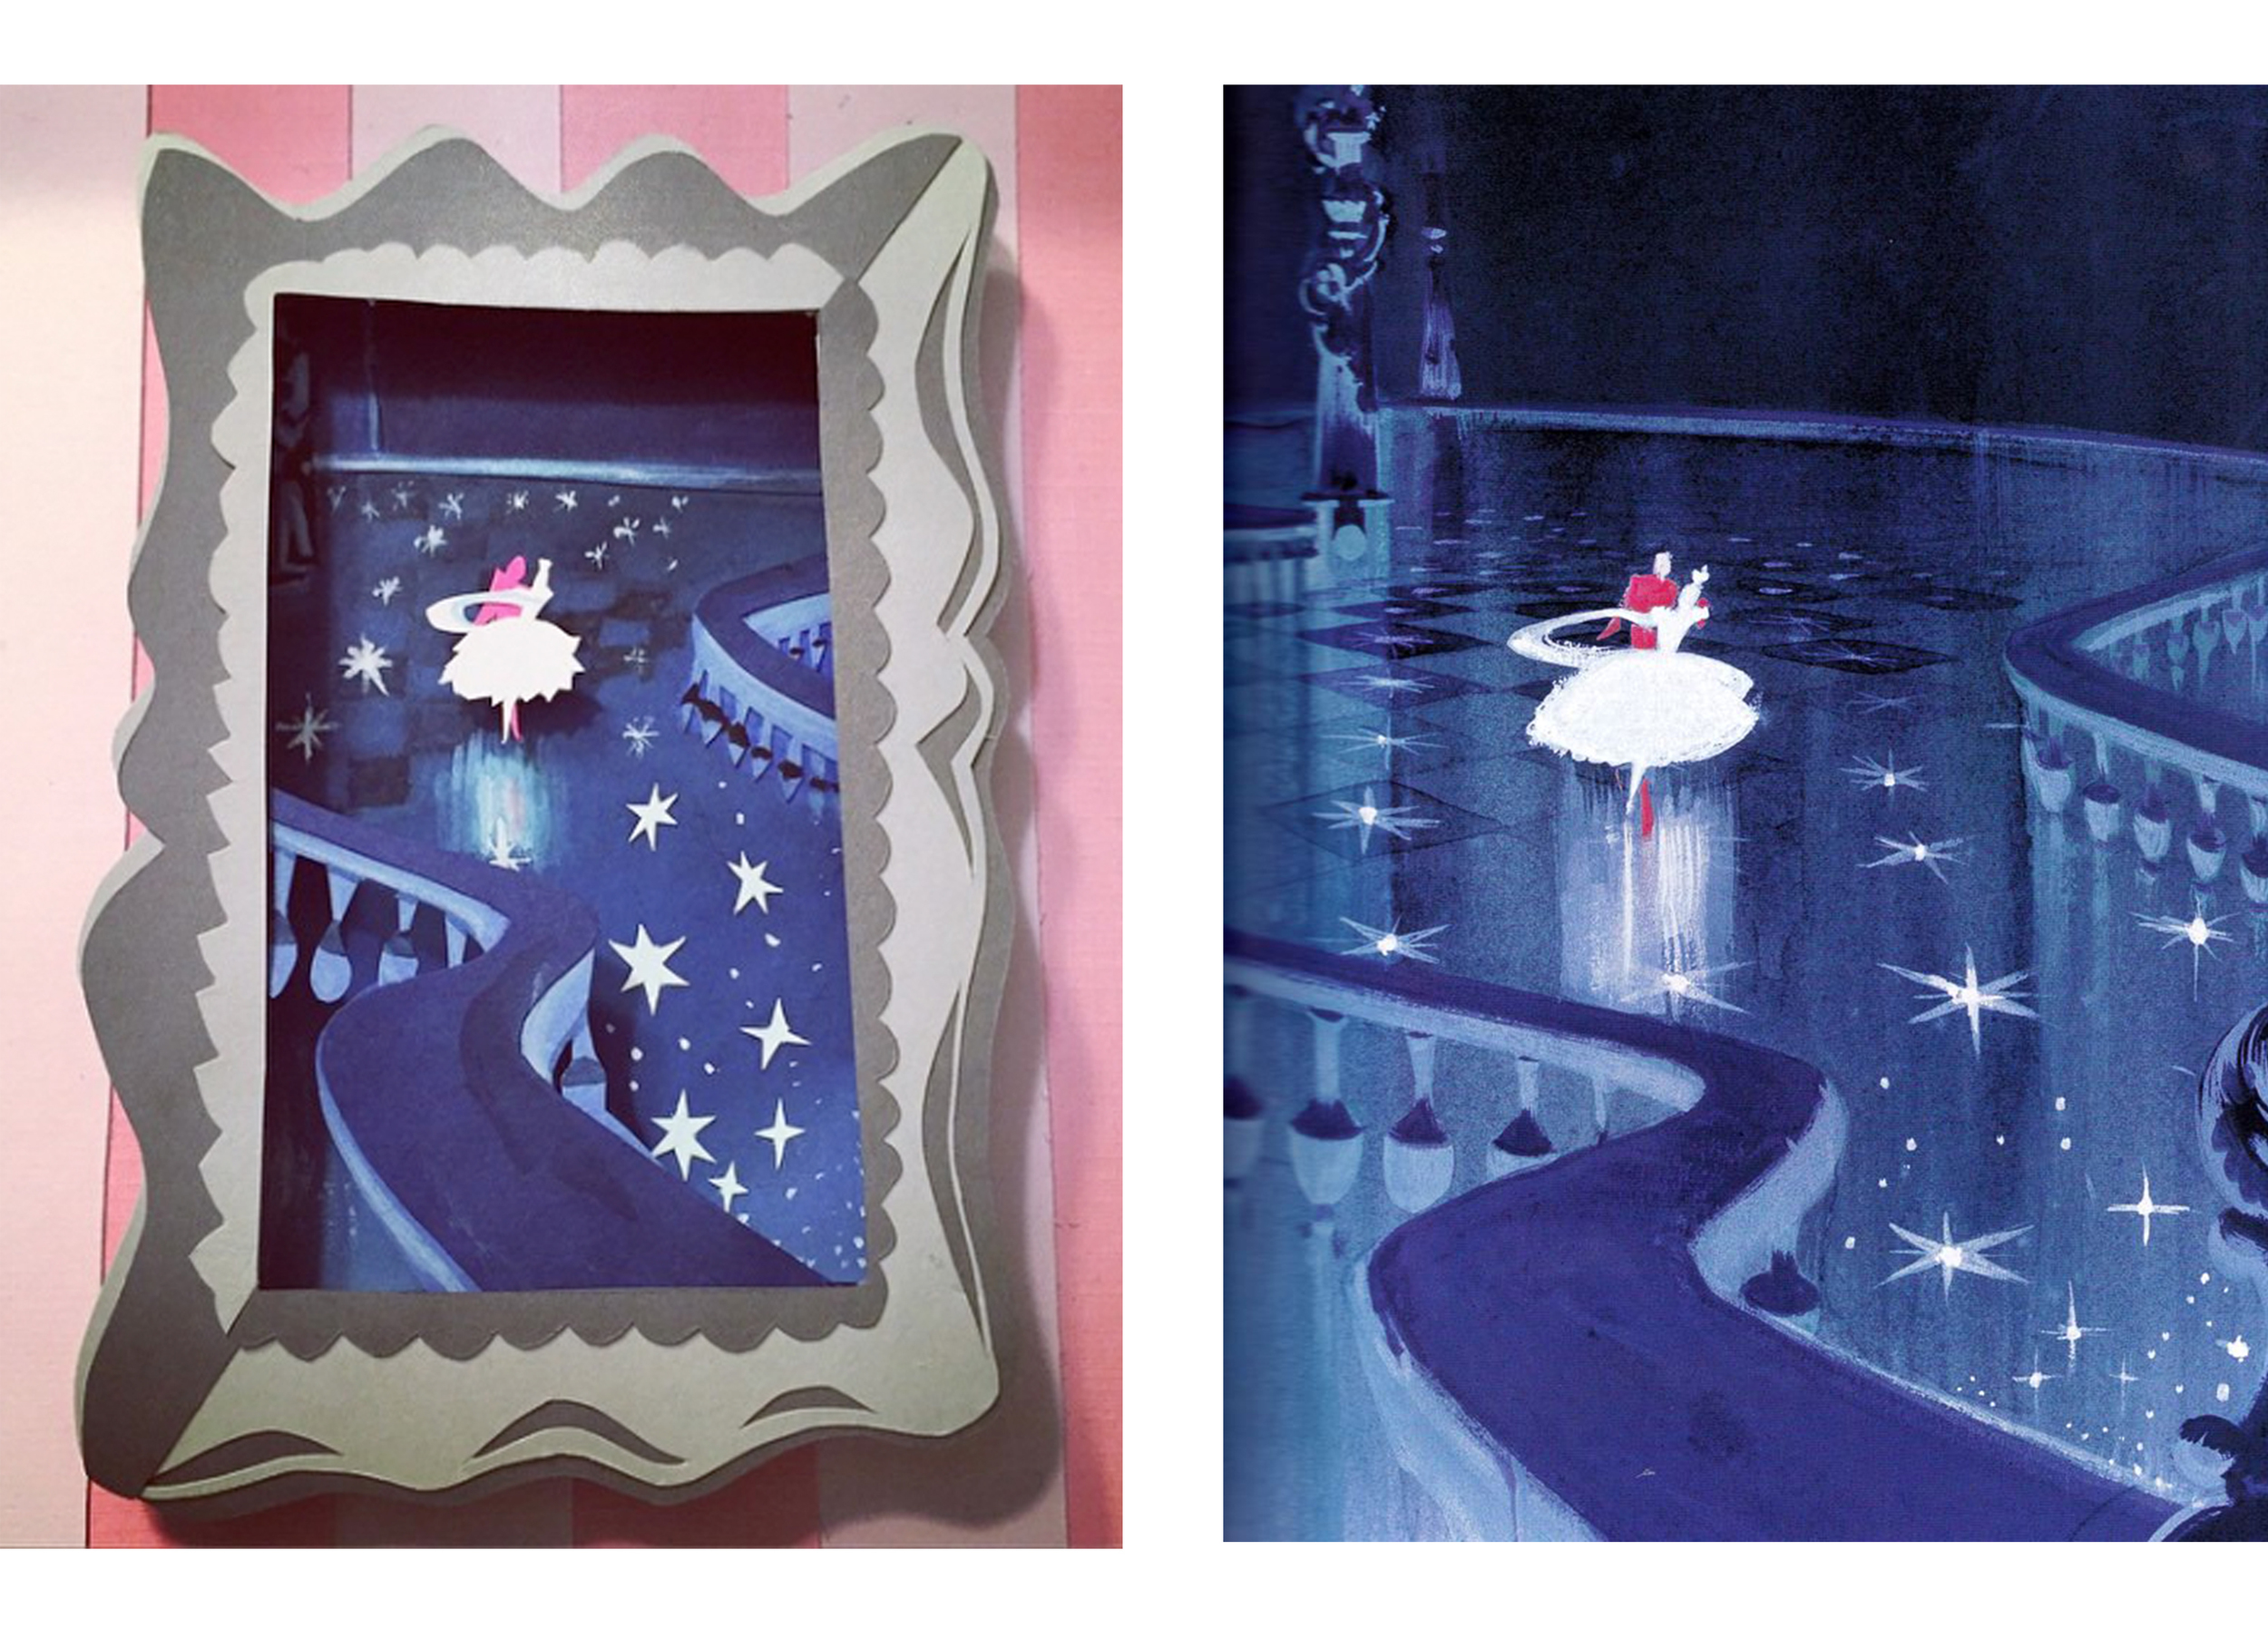 I had a lot of fun trying to adapt a painting to paper cut.I found it tricky when some paintings are so gestural versus paper cut art which is best done using major colors and shapes. On the left is my adaptation of the original painting she created for   Cinderella  .